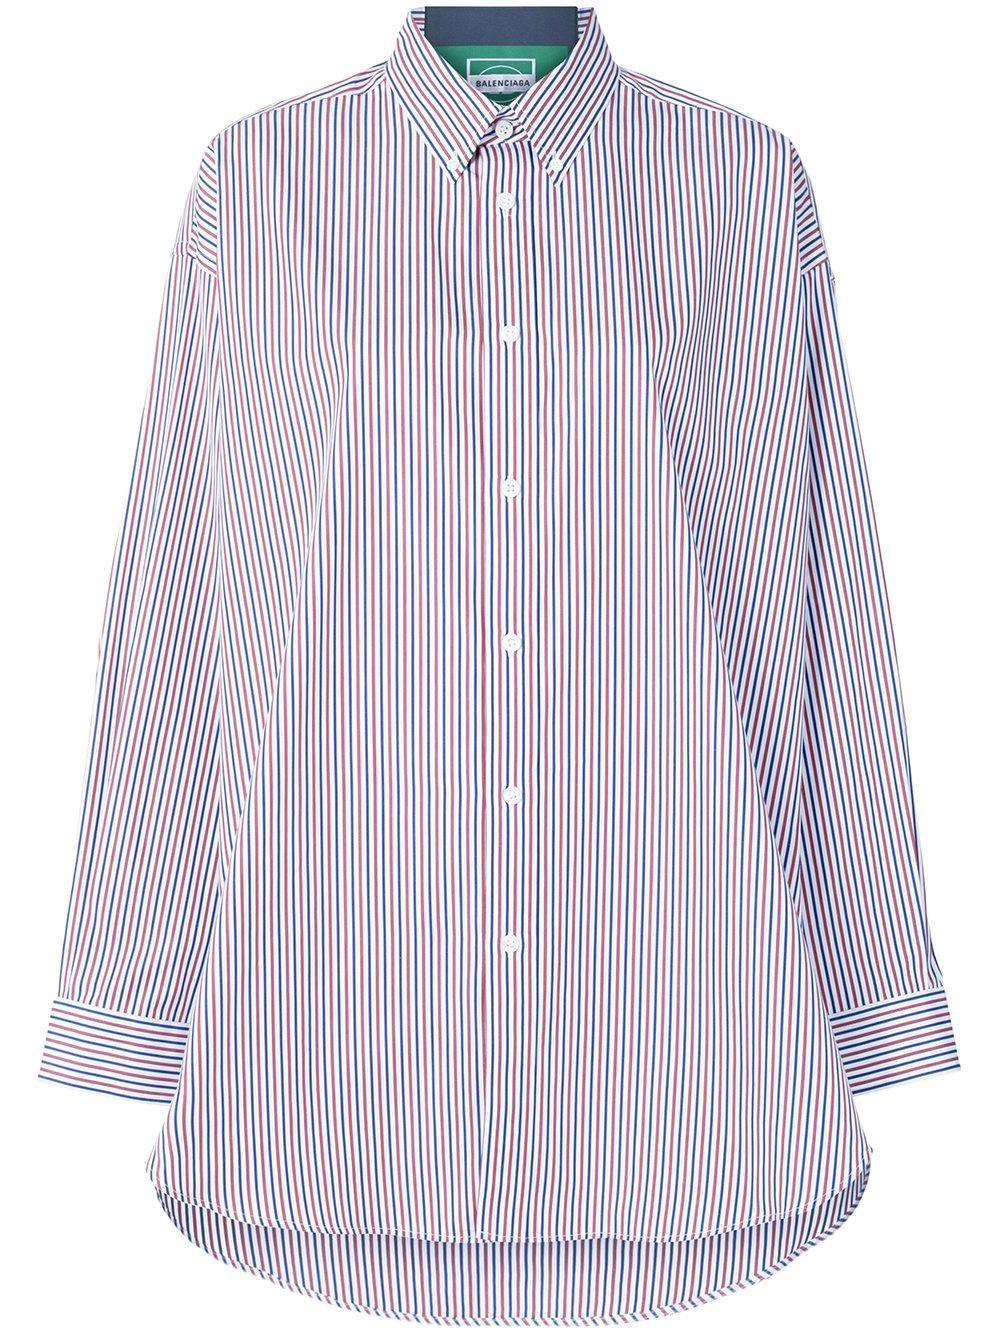 Latest Collections Cheap Best Seller Tag Oversized Appliquéd Striped Cotton-poplin Shirt - Blue Balenciaga Choice Cheap Price Visit For Sale AaUGz5xcr